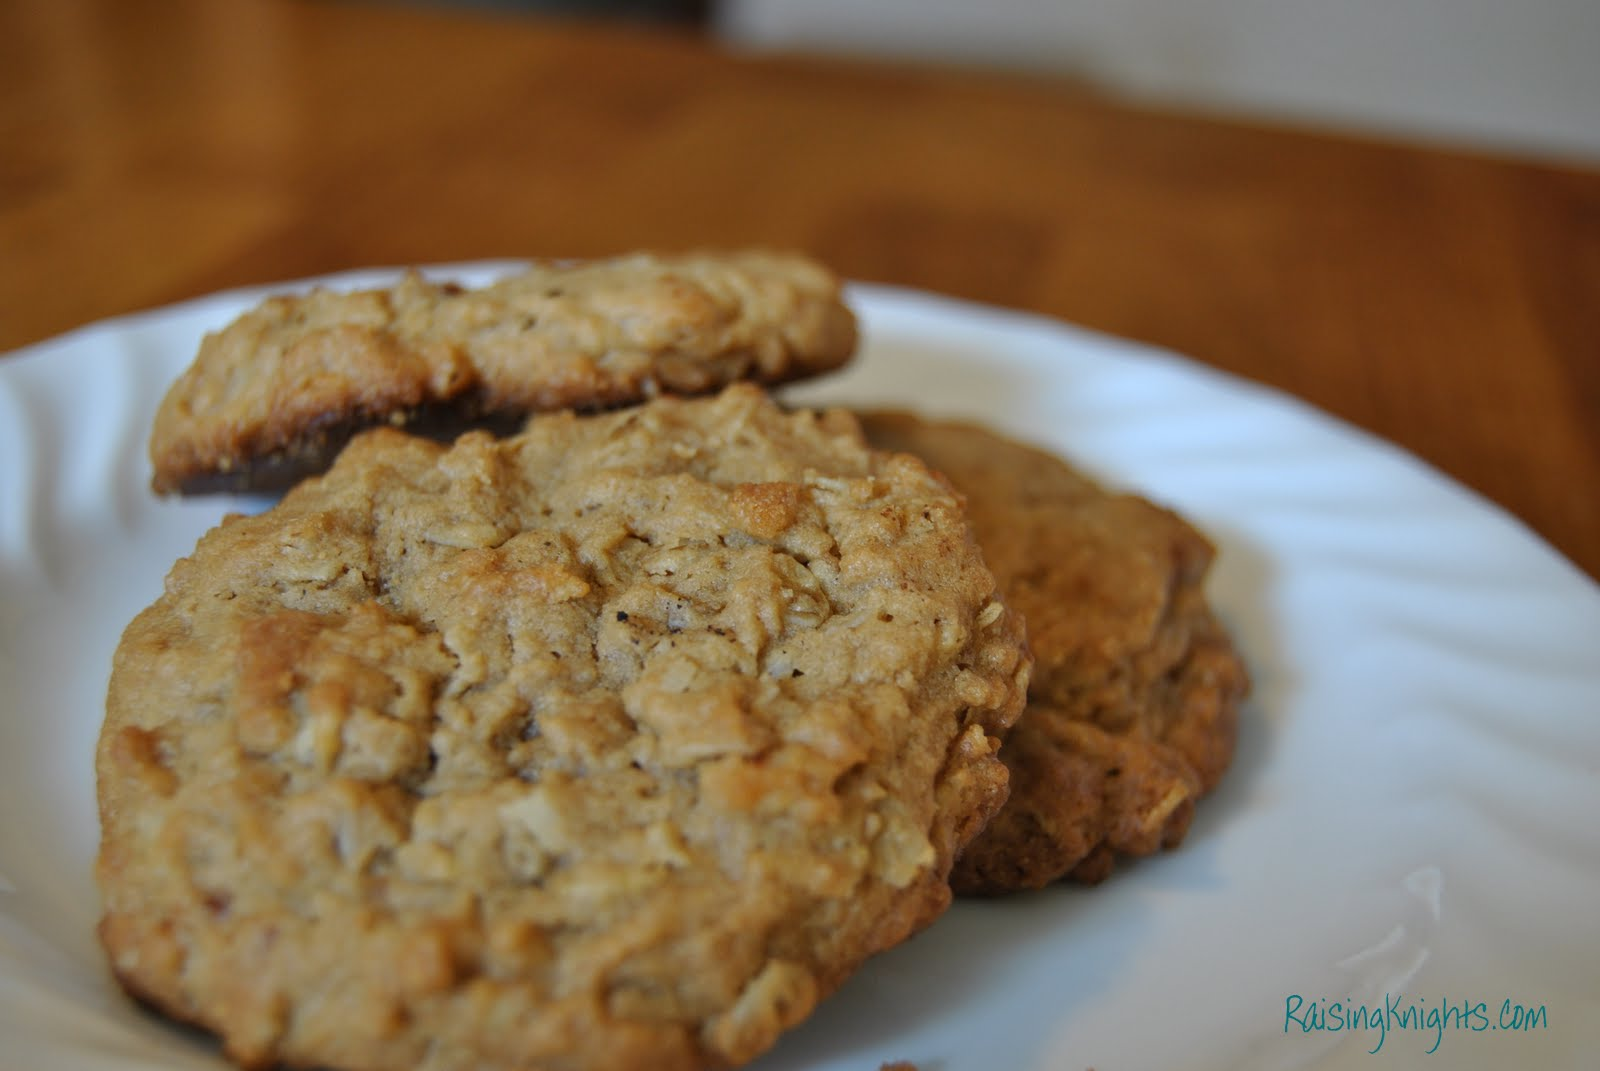 Raising Knights: Peanut Butter Oatmeal Cookies